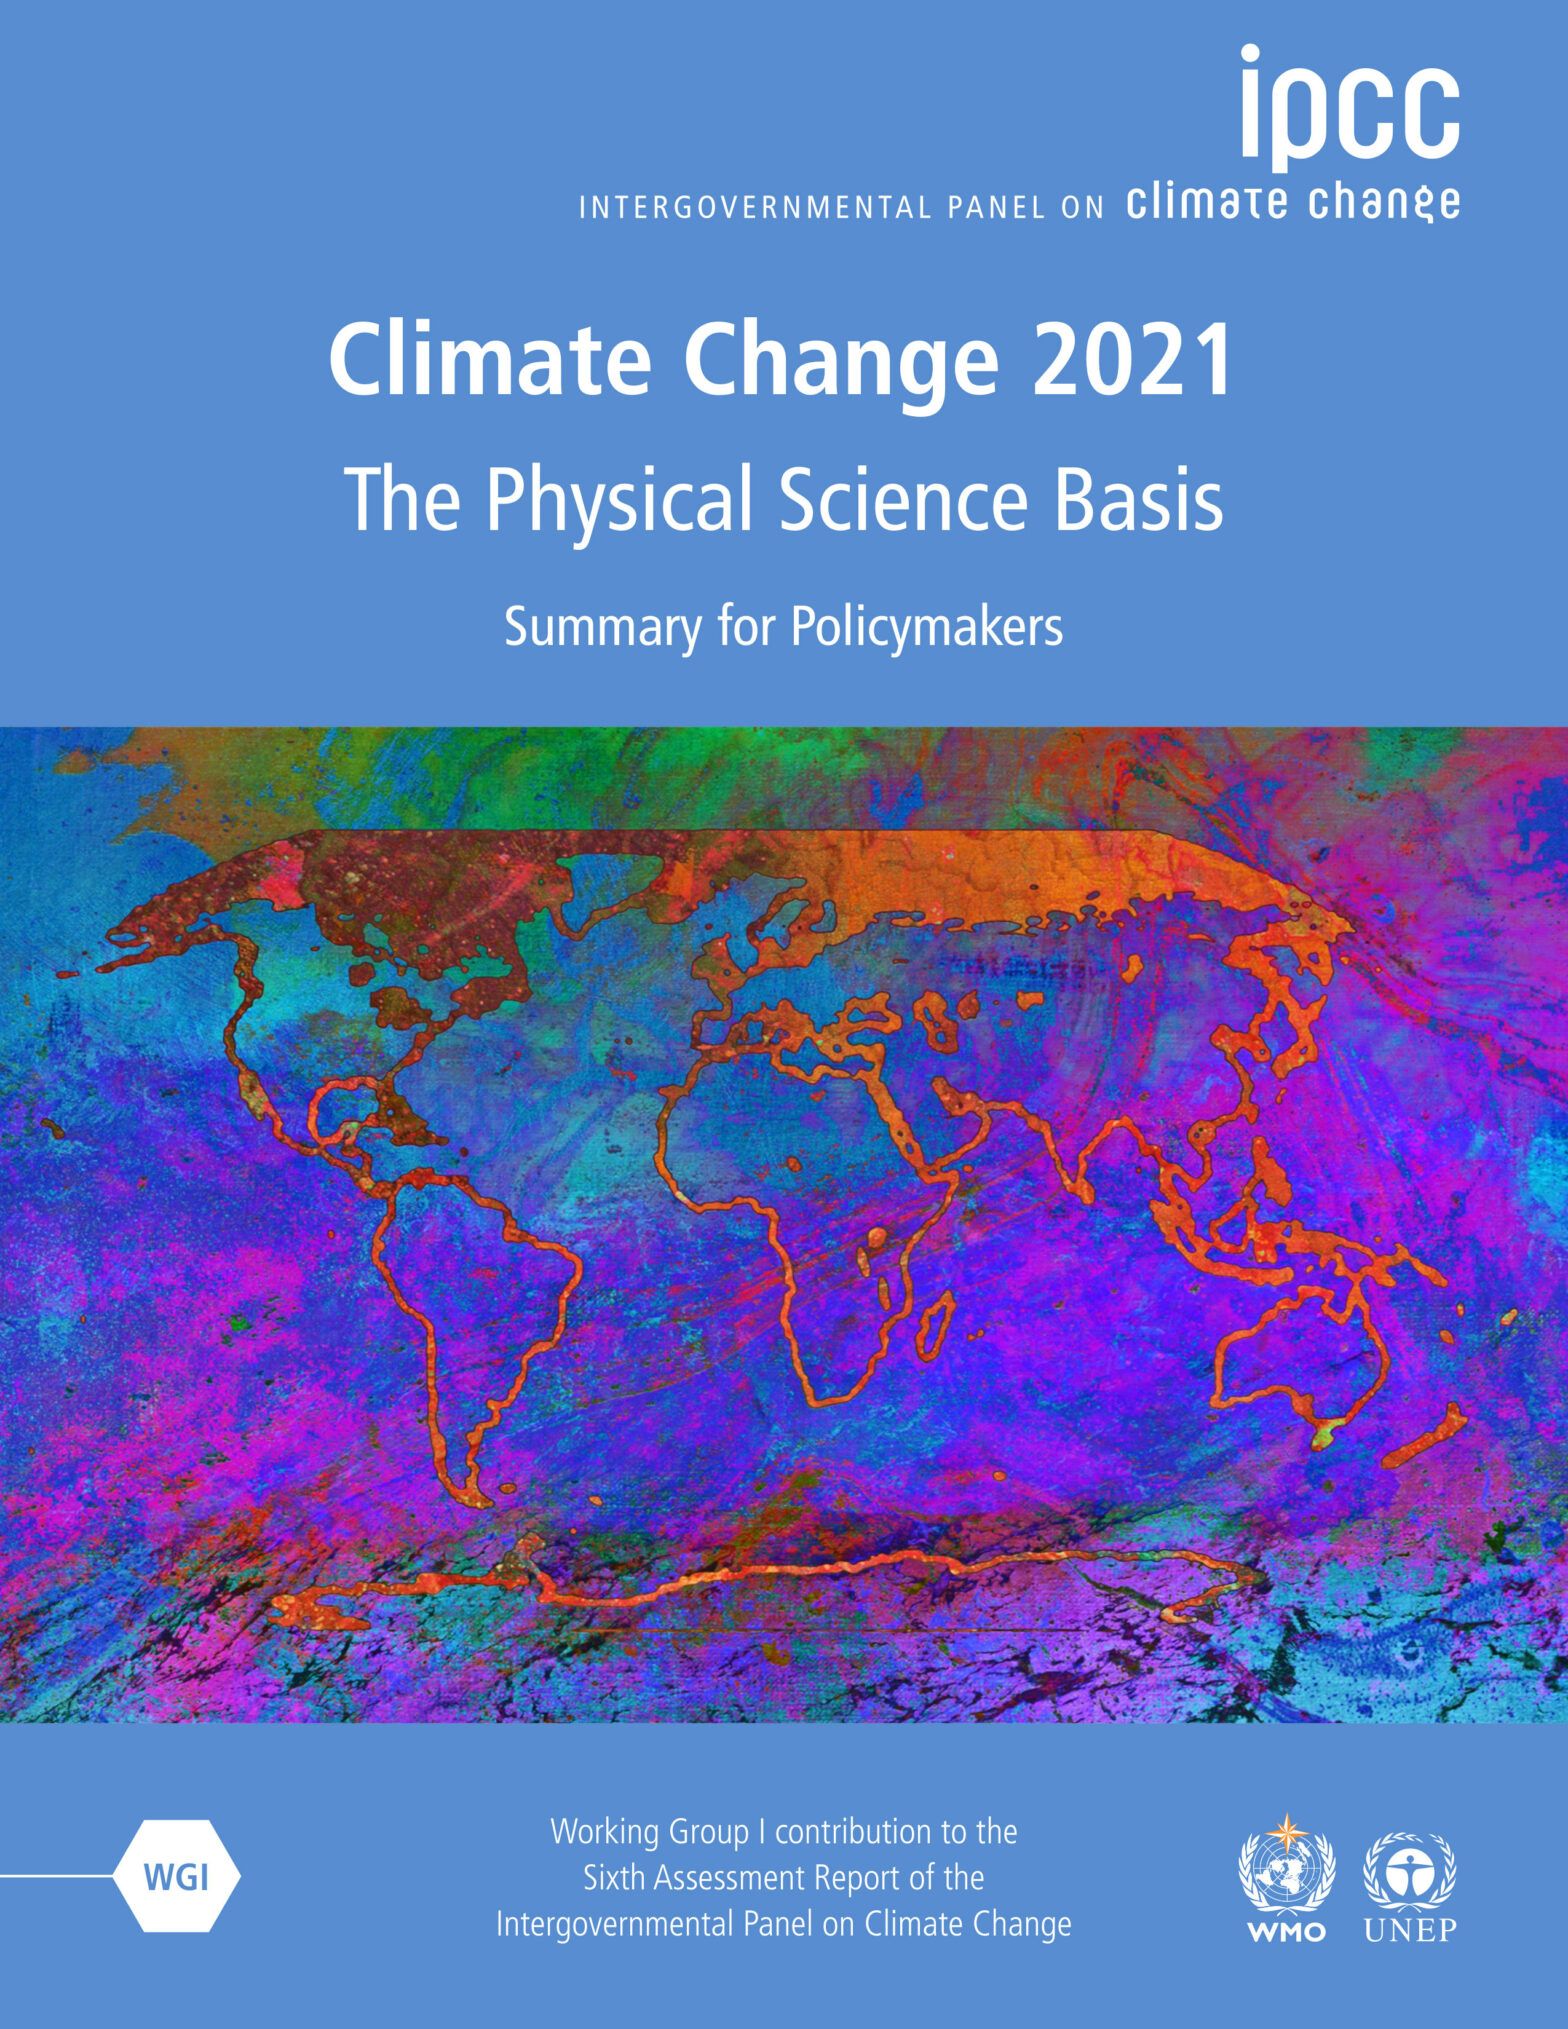 cover of ipcc intergovernmental panel on climate change climate change 2021 the physical science basis summary for policymakers